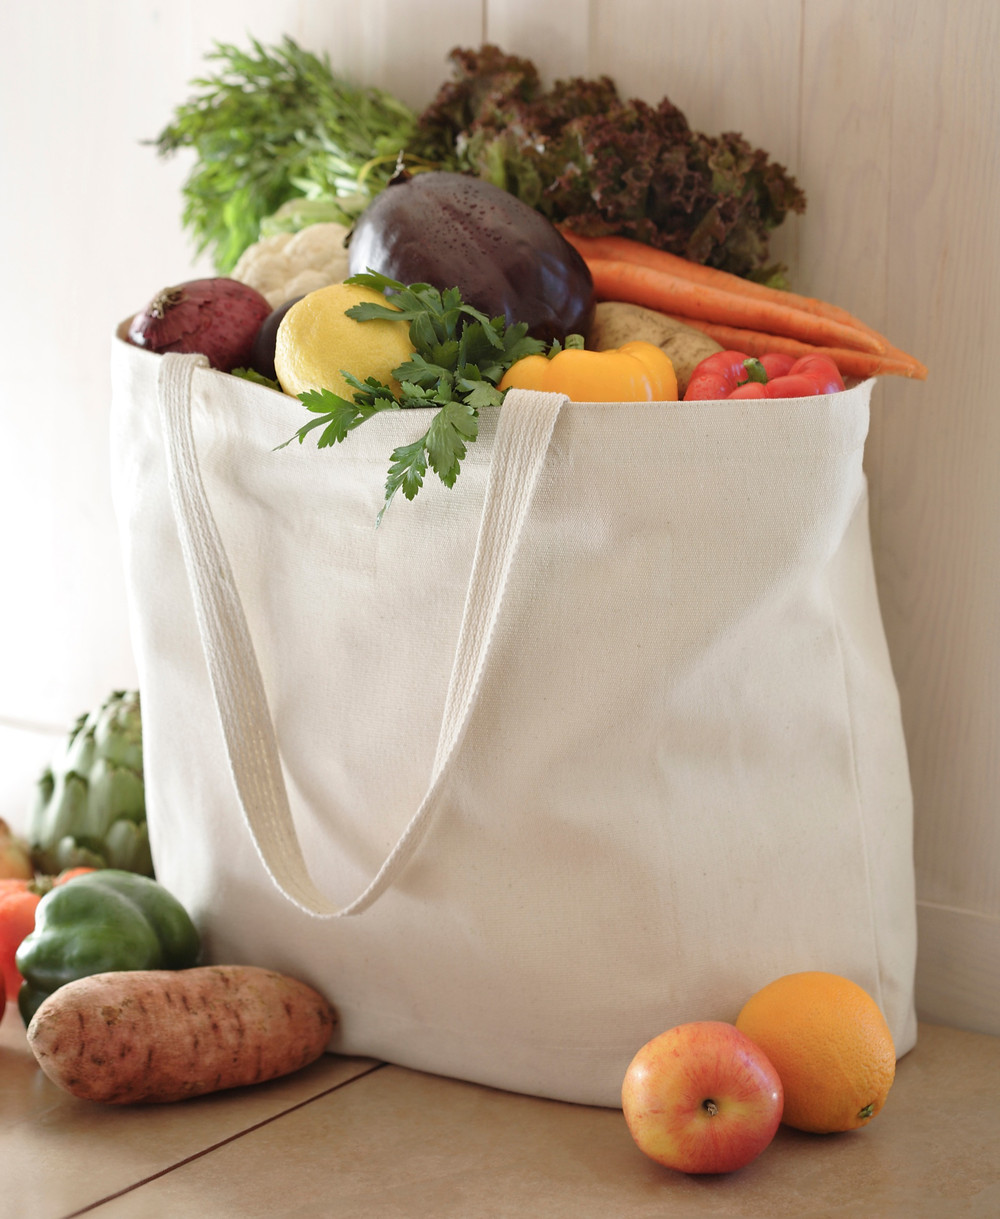 White canvas bag full of fruit and vegetables